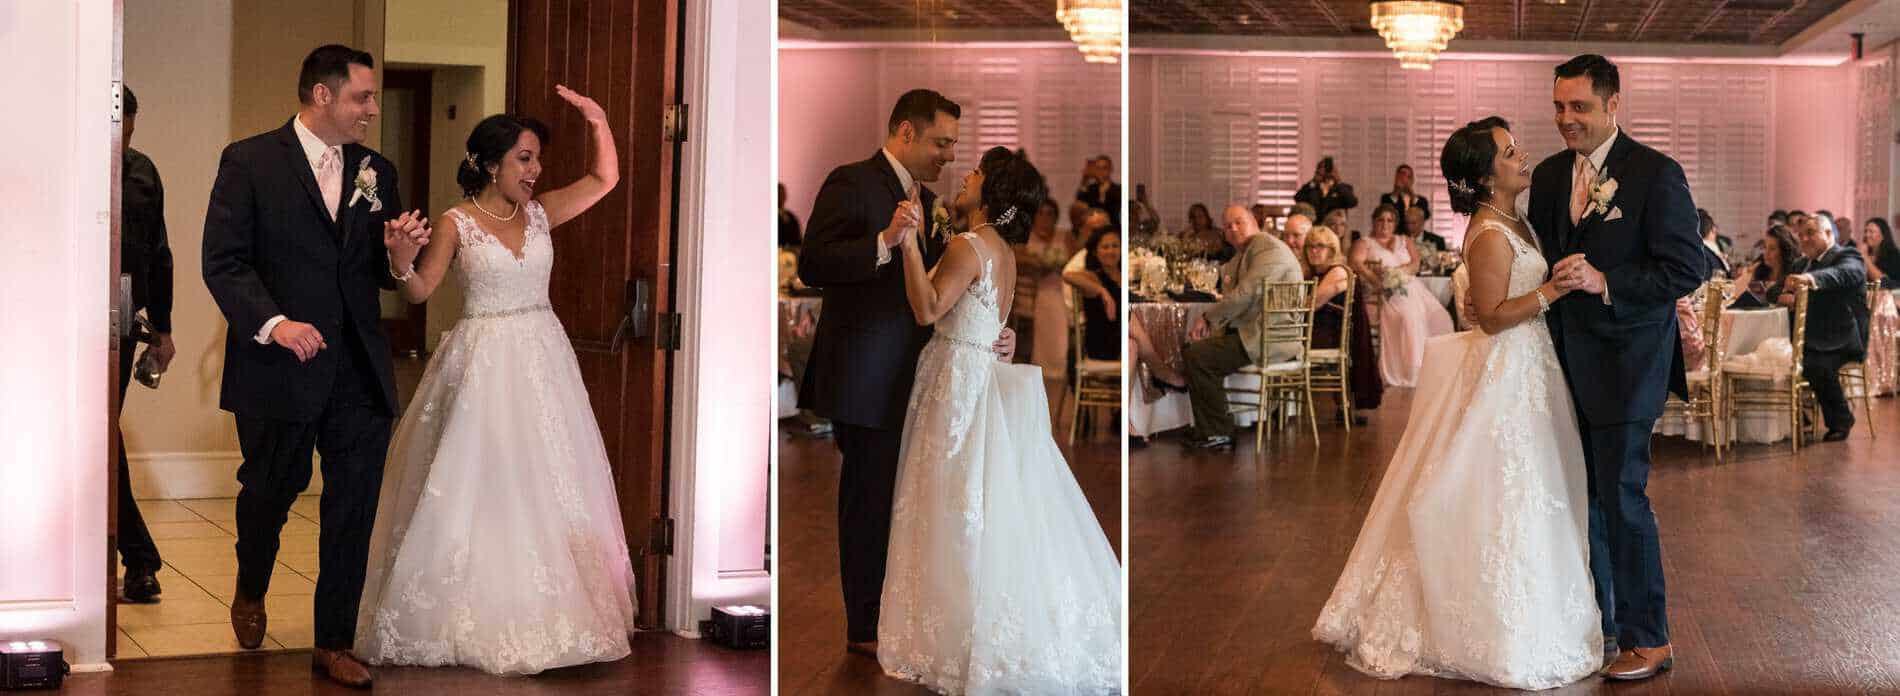 Couple take their first dance at Golden Bear Club